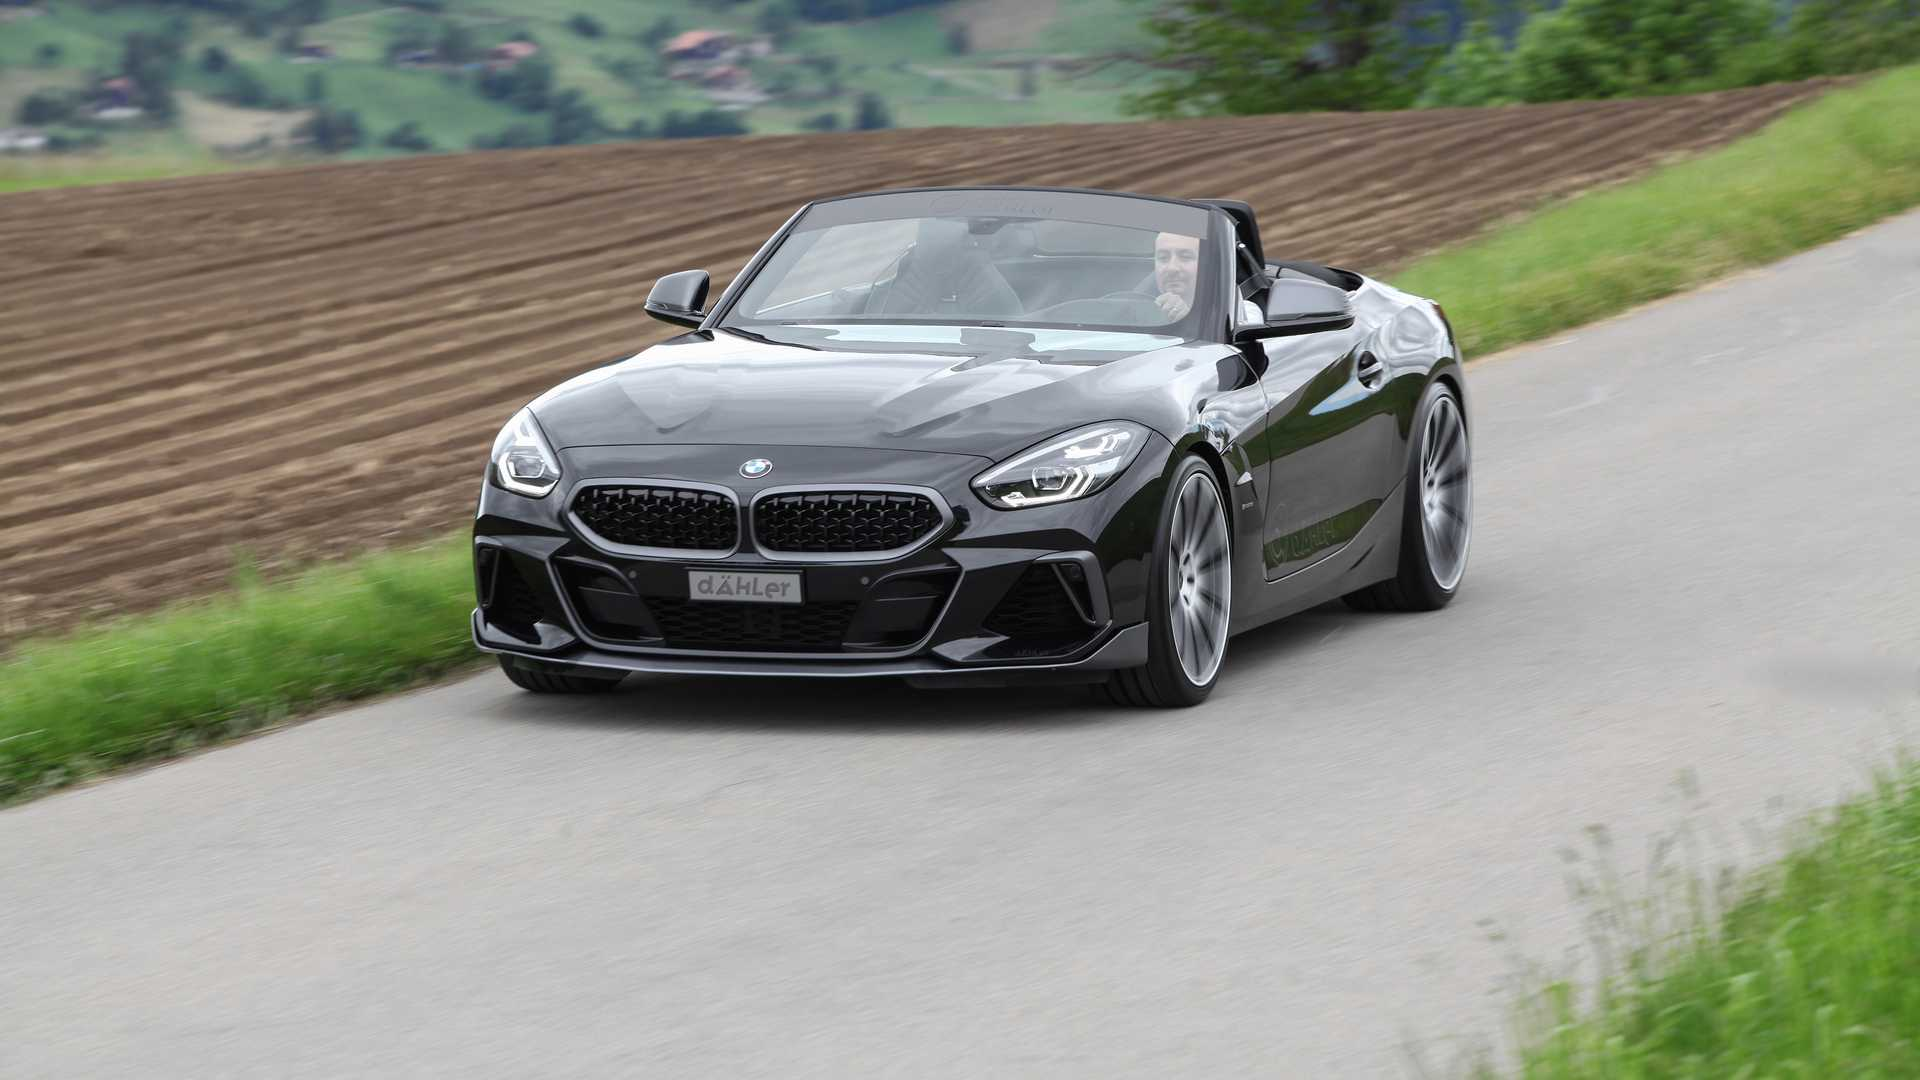 BMW-Z4-M40i-by-Dahler-4